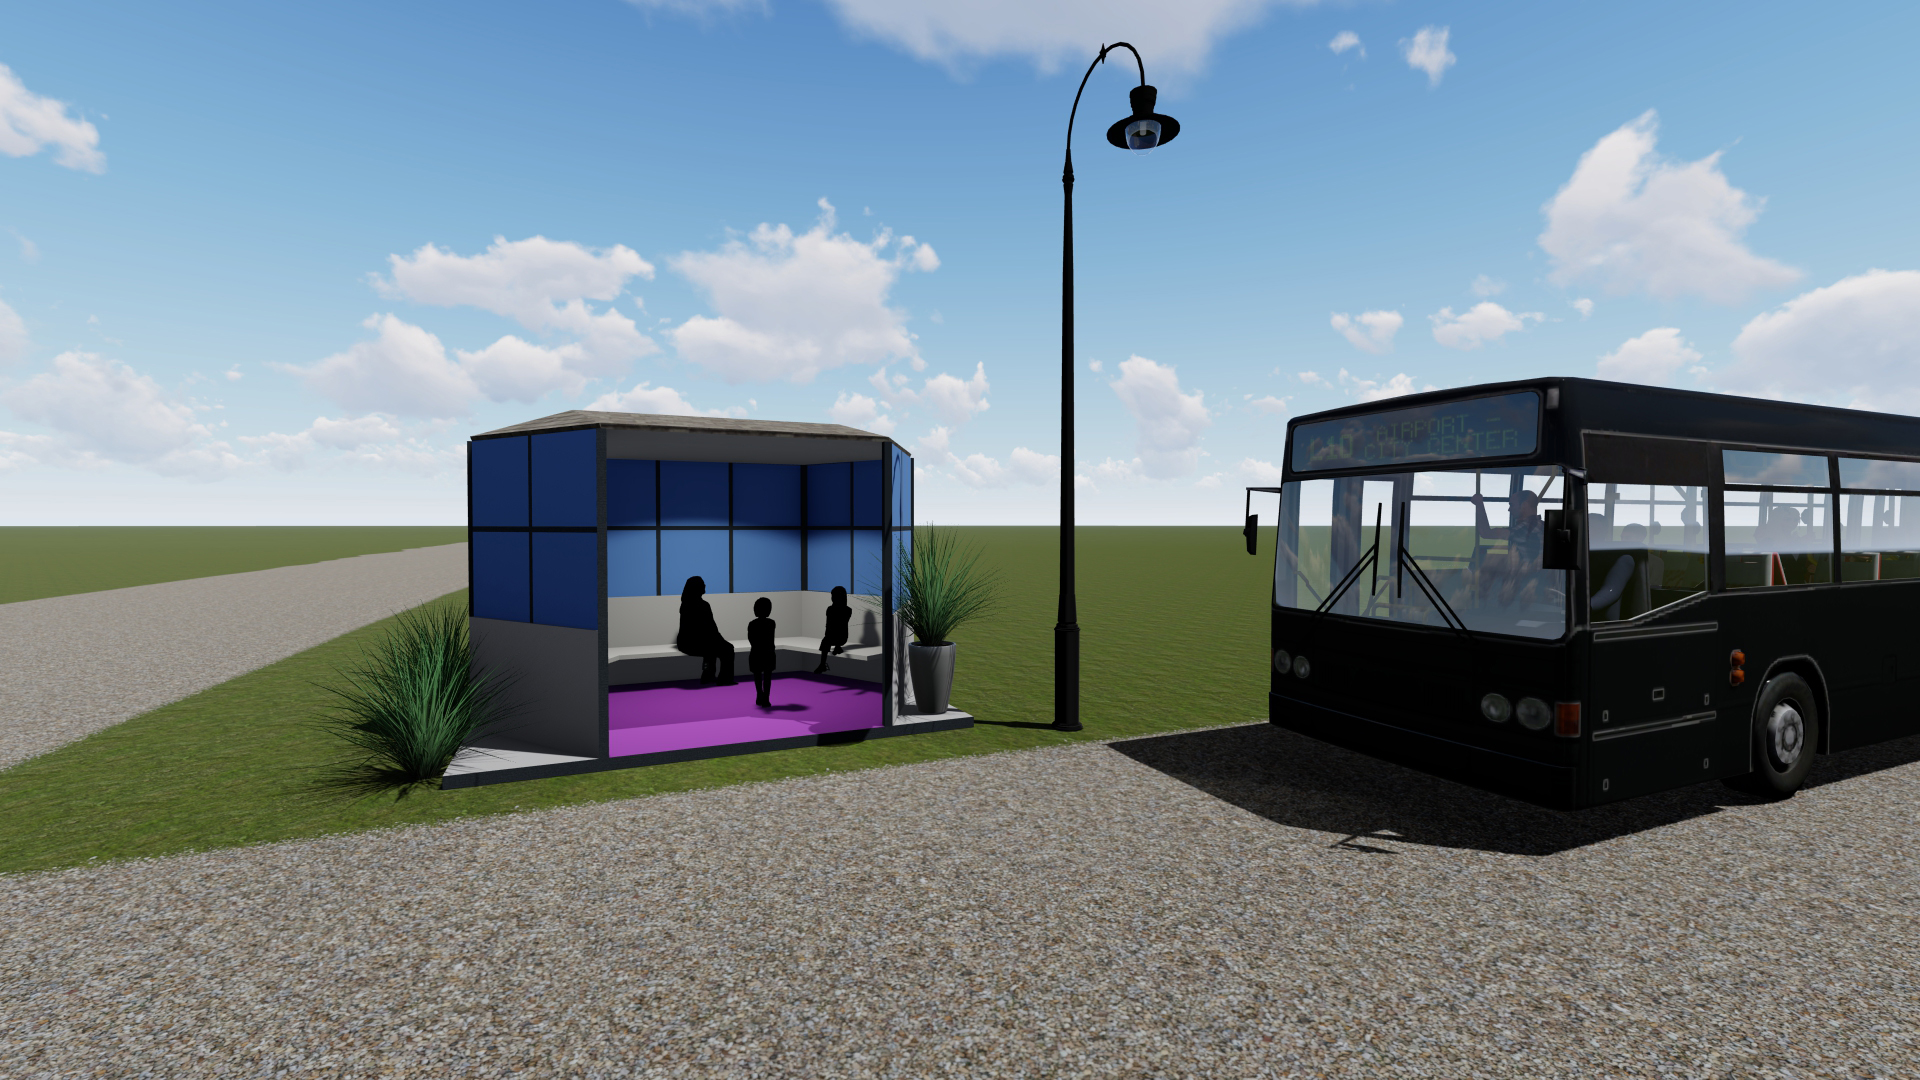 a preliminary rendering of the bus stop university of iowa engineering and art students are working on with officials in plymouth, iowa